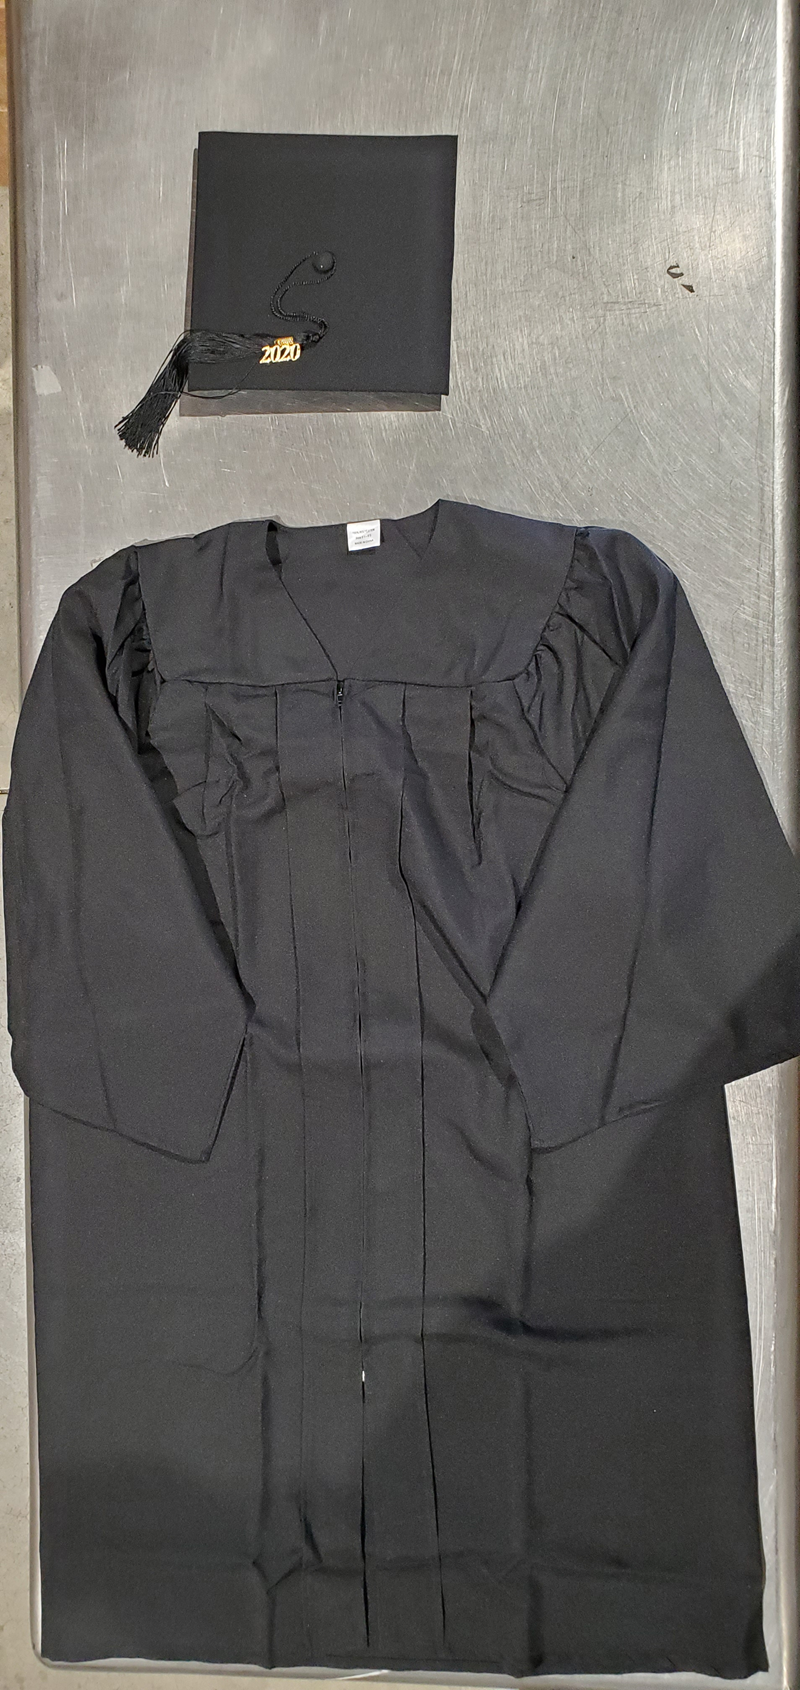 Cap, Gown, Tassel Without Sash (SKU 1125355642)